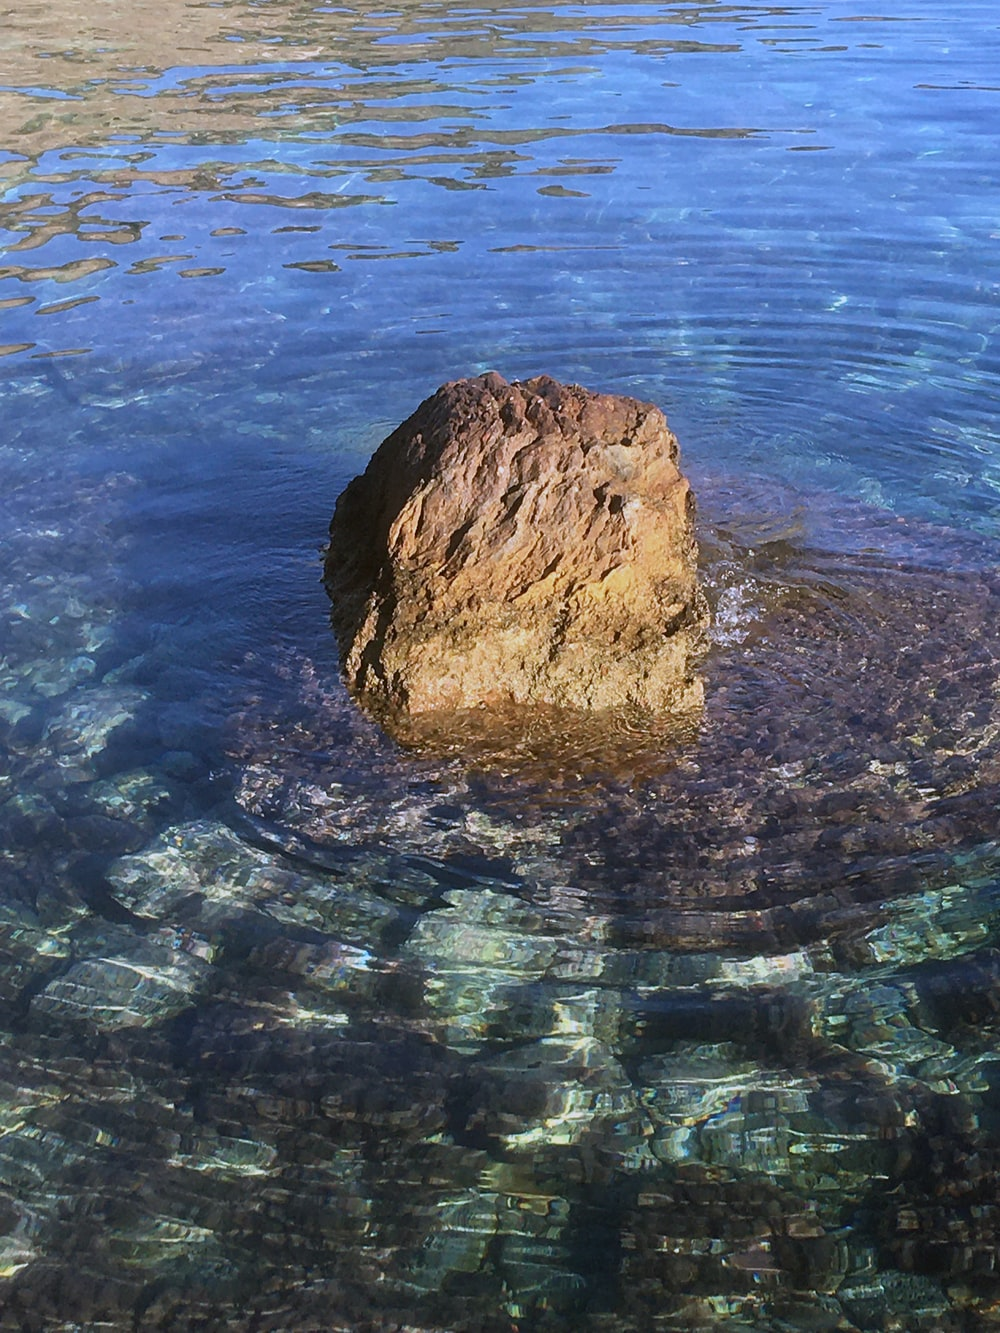 brown rock in the middle of water